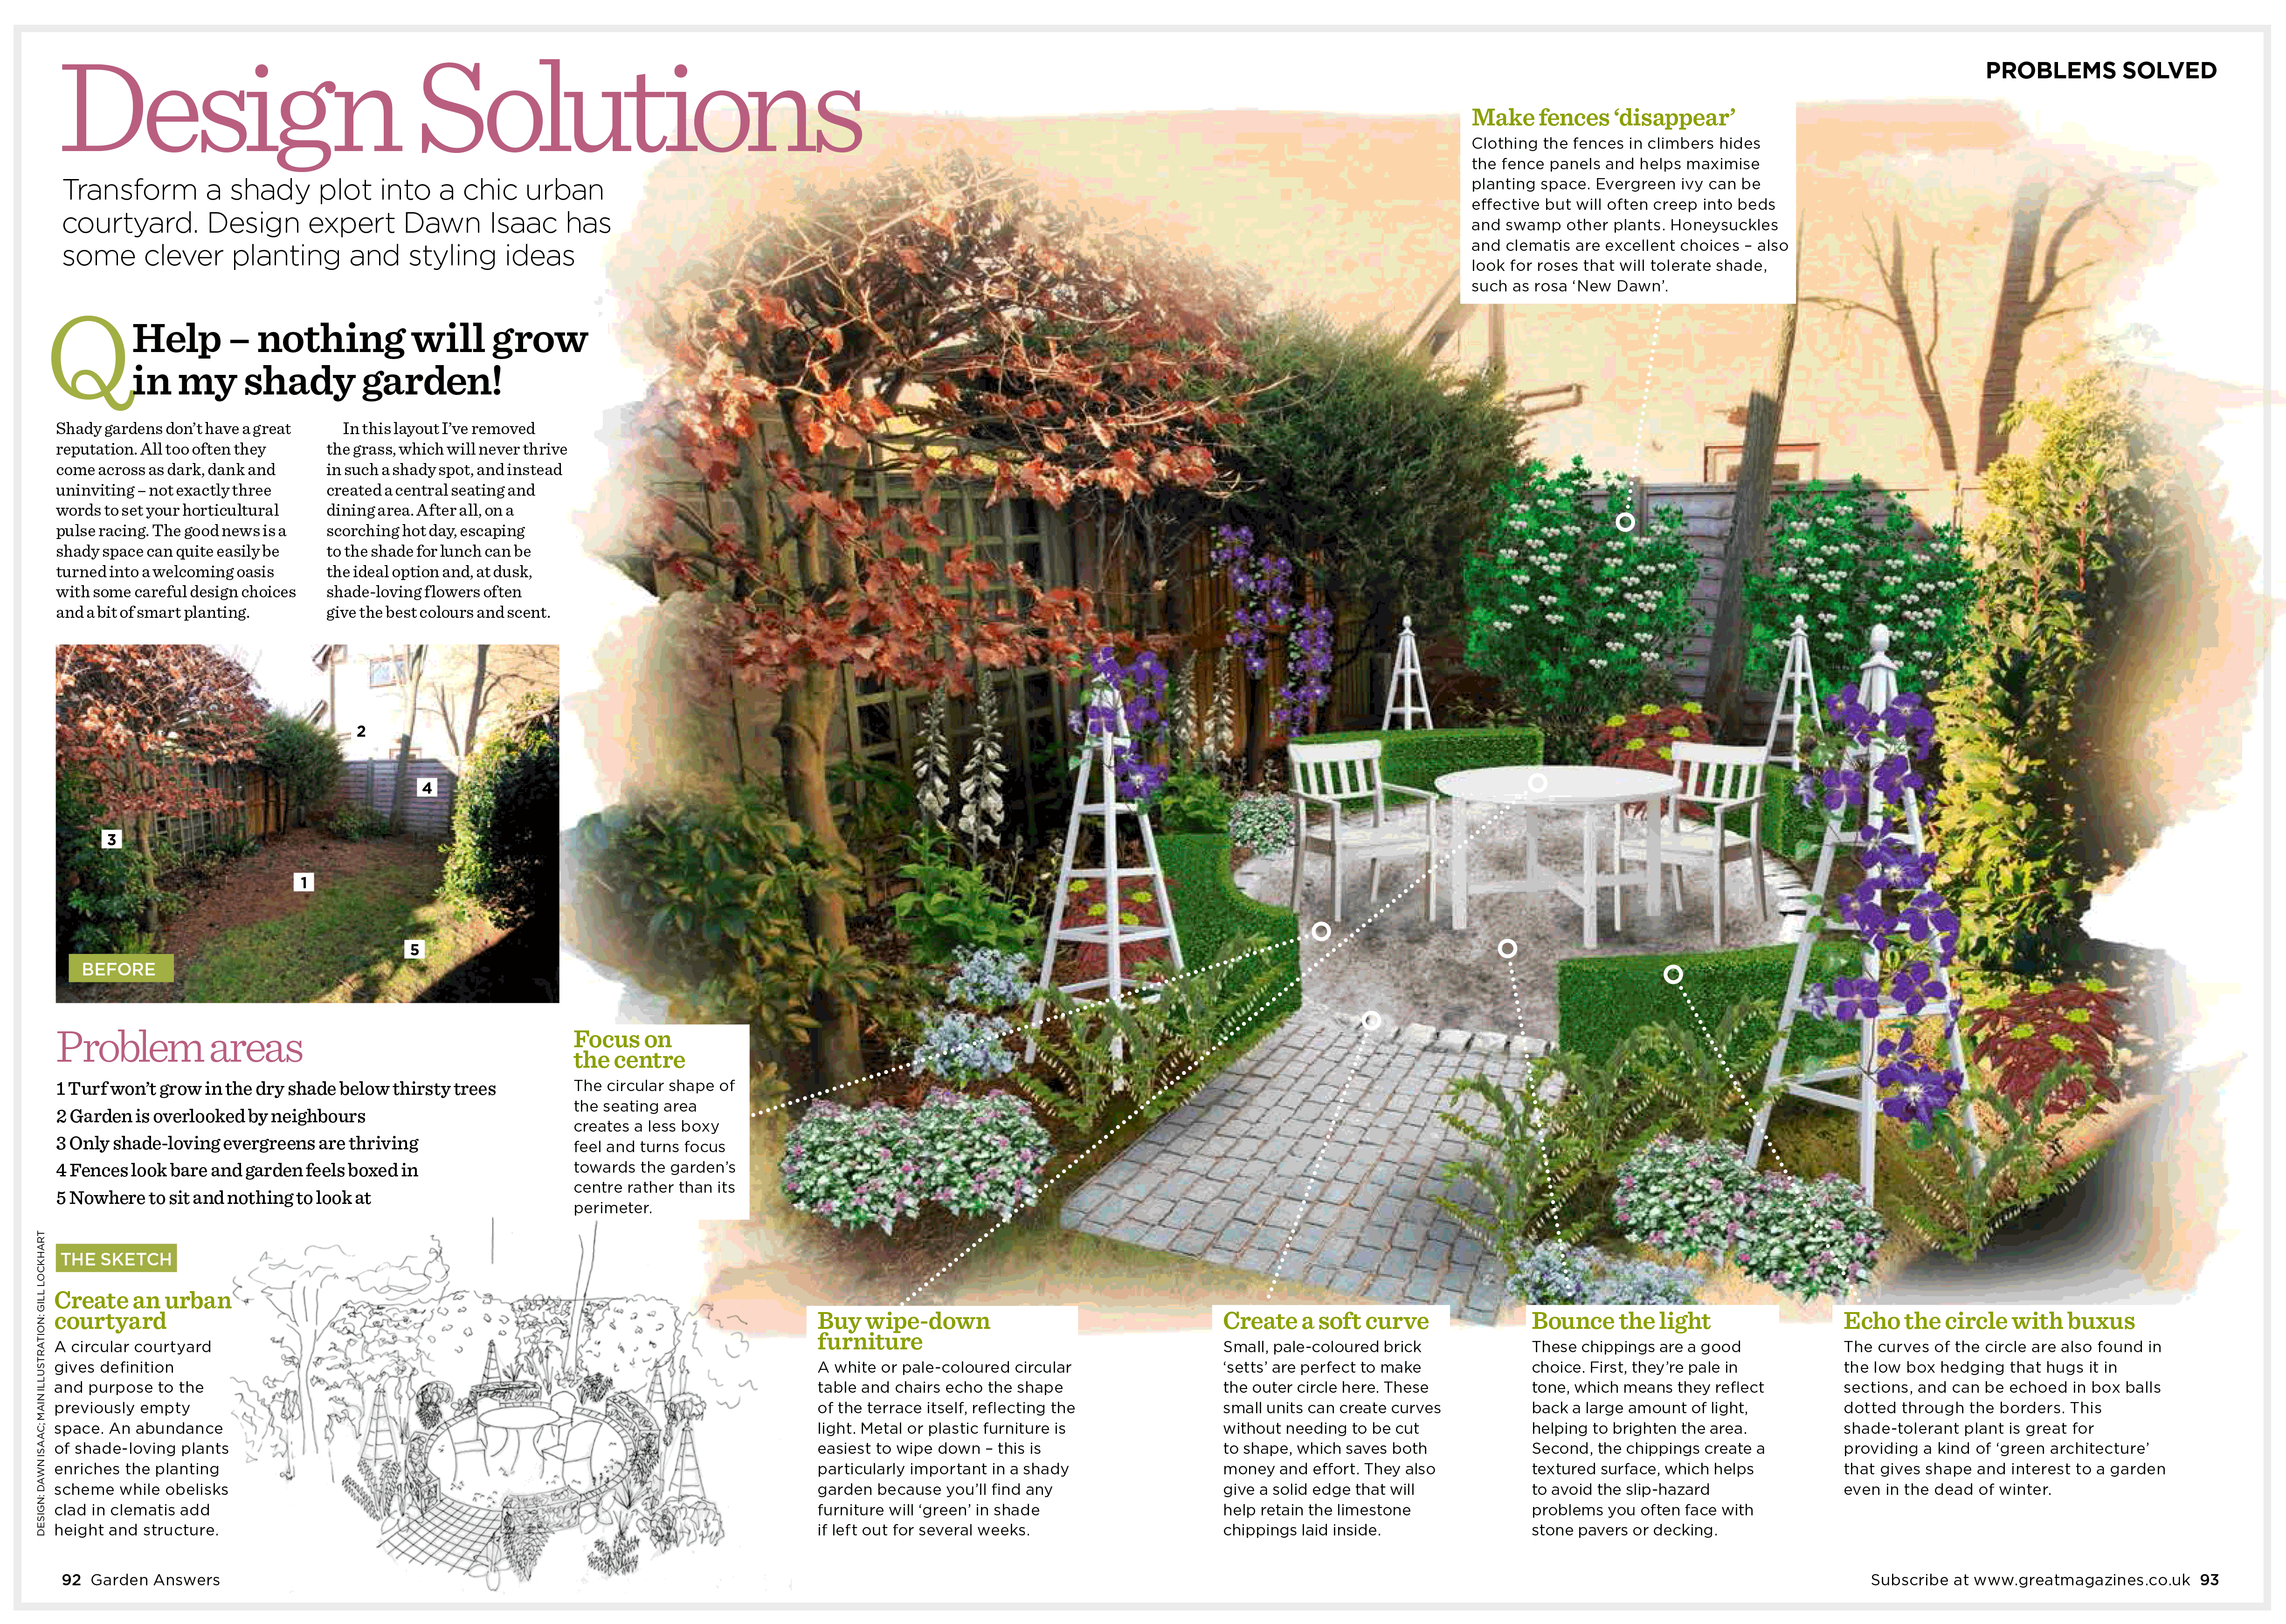 Border Planner | TANTRUMS AND MIRACLES IN THE GARDEN on french garden design, color garden design, water garden design, butterfly garden design, kitchen garden design, laying out garden design, wood garden design, knot garden design, food garden design, botanical garden design, modern garden design, circle garden design, bulb garden design, white garden design, bog garden design, wildlife garden design, corner garden design, natural garden design, forest garden design, shade garden design,